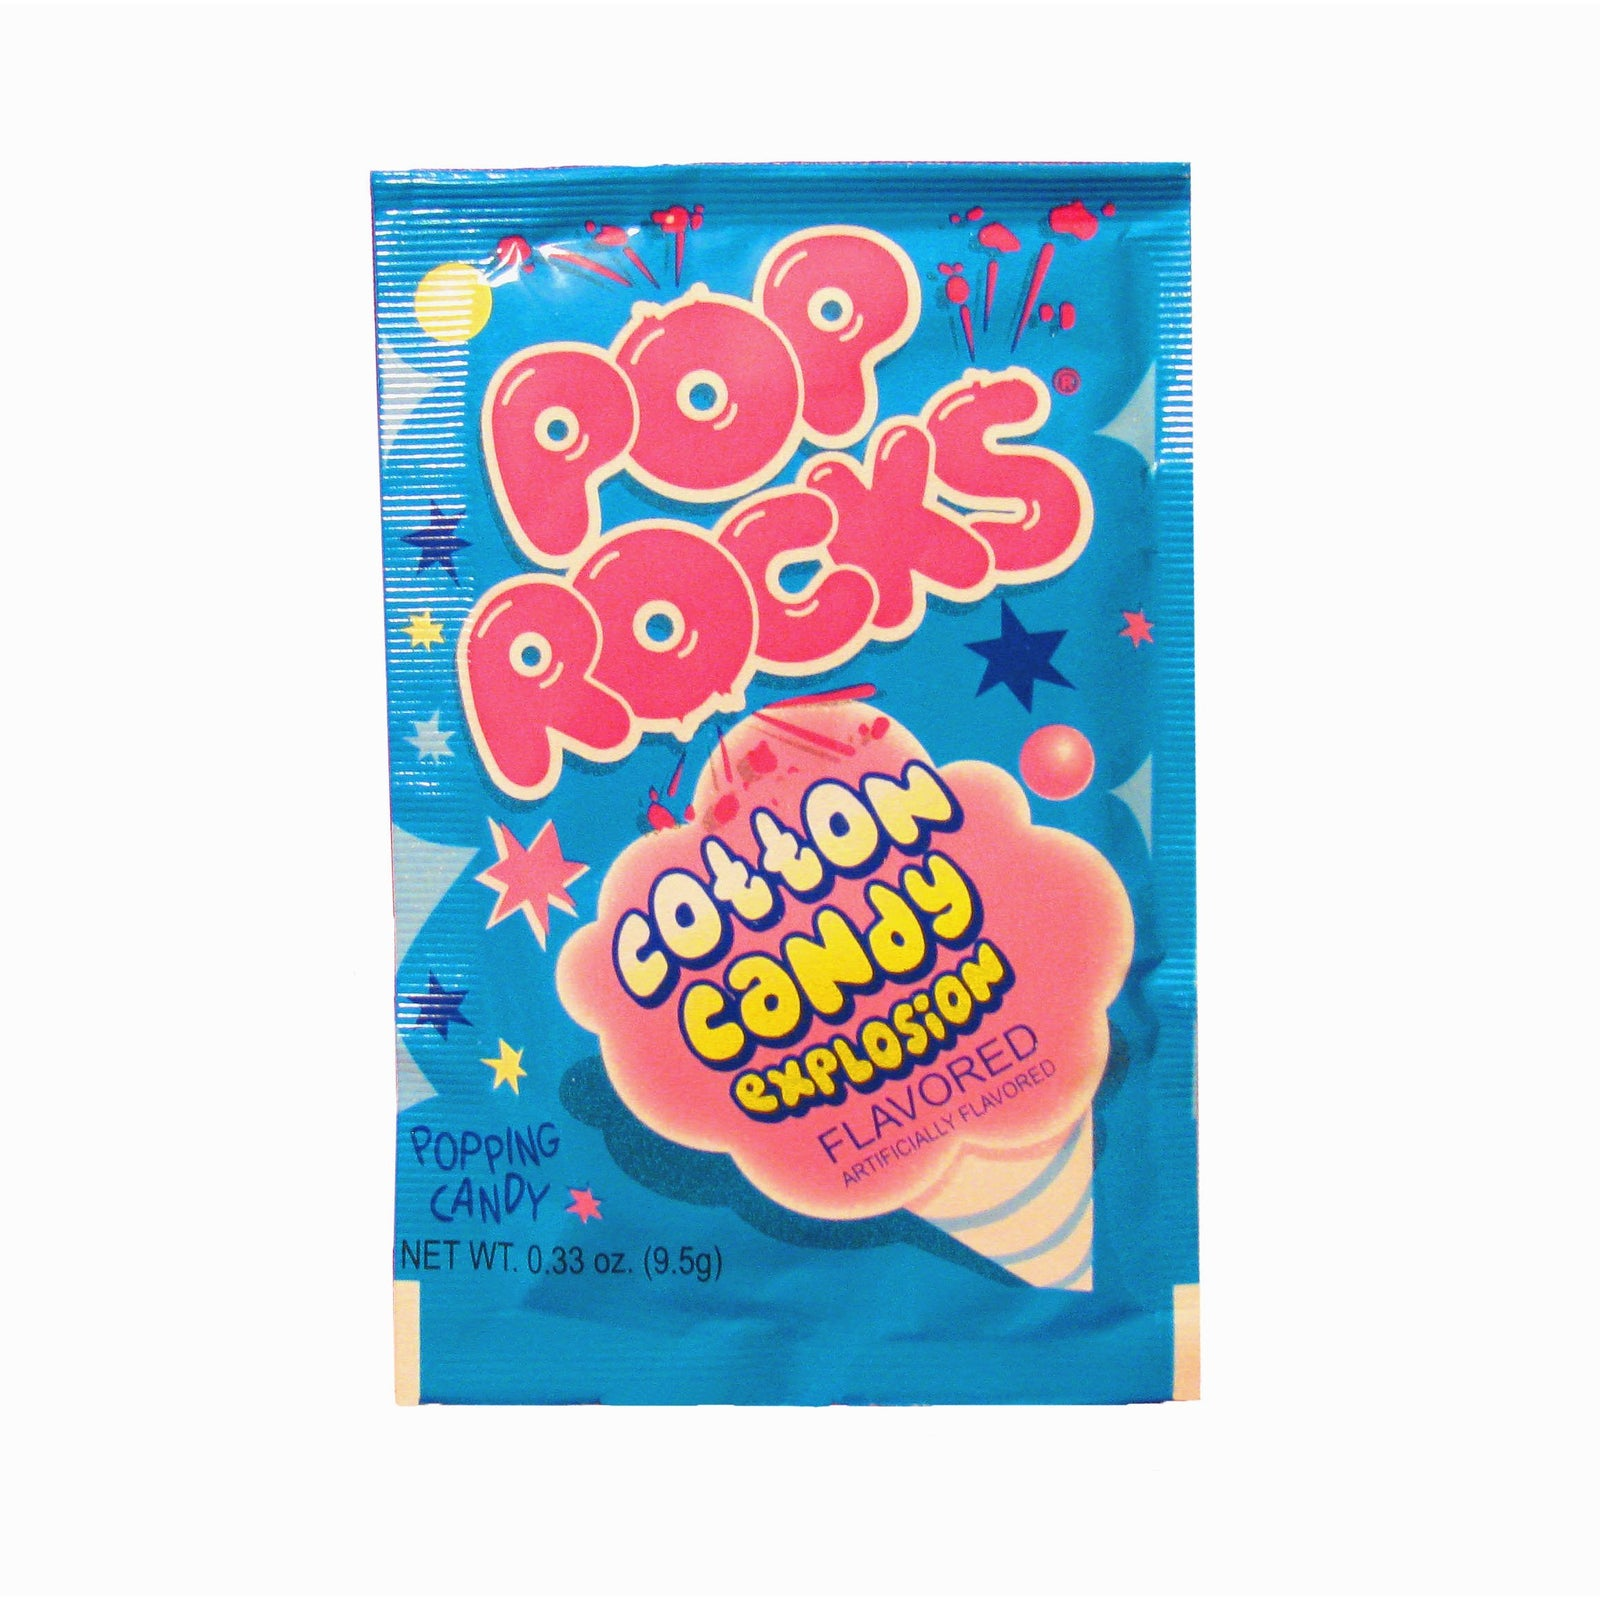 Pop Rocks Popping Candy - Cotton Candy Flavored